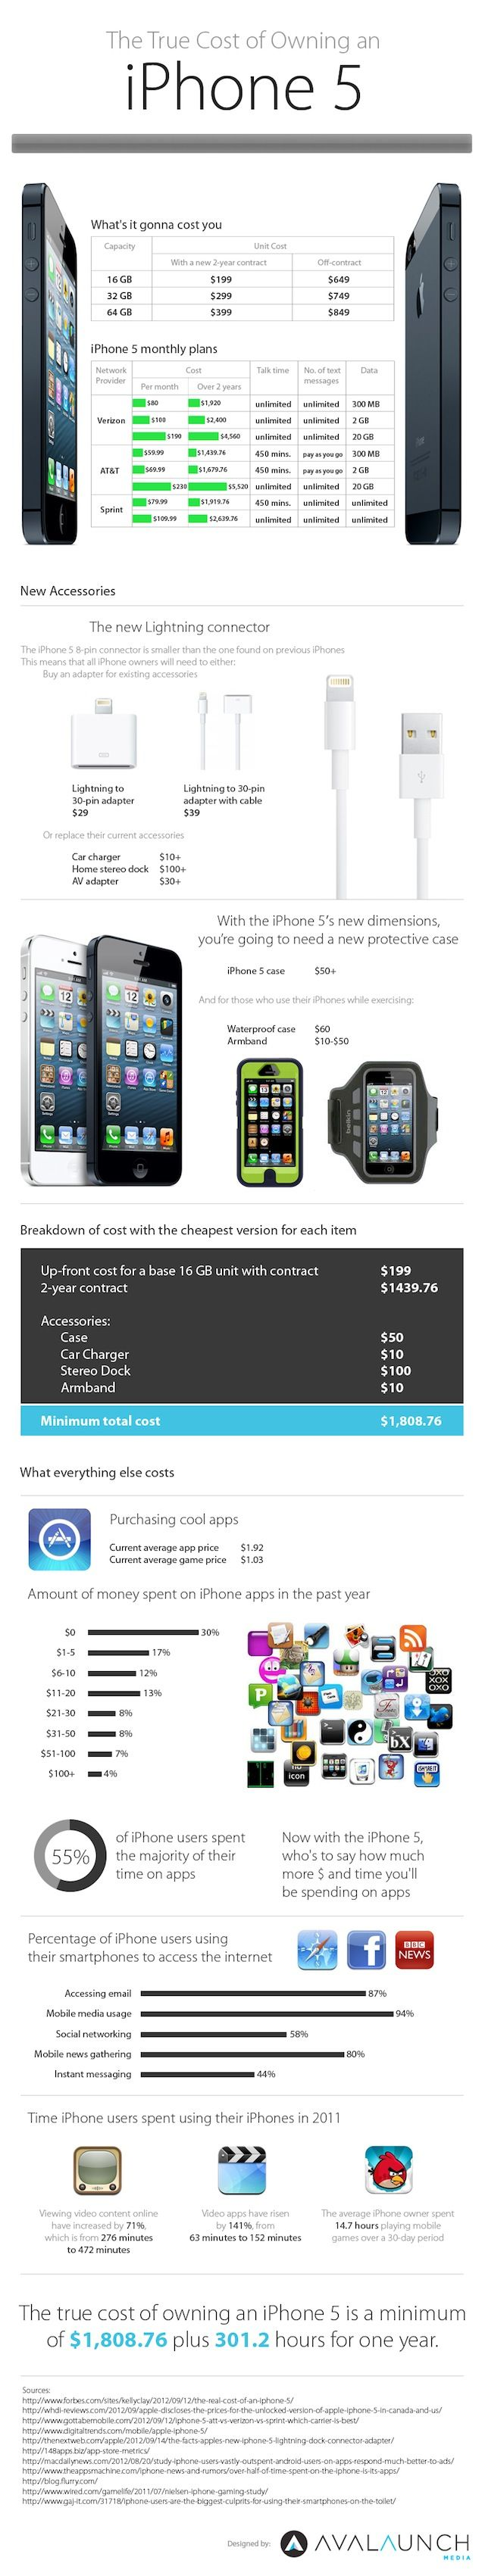 Www etradesupply com media uploaded iphone 5c vs iphone 5 screen jpg - The Iphone 5 Really Costs You 1800